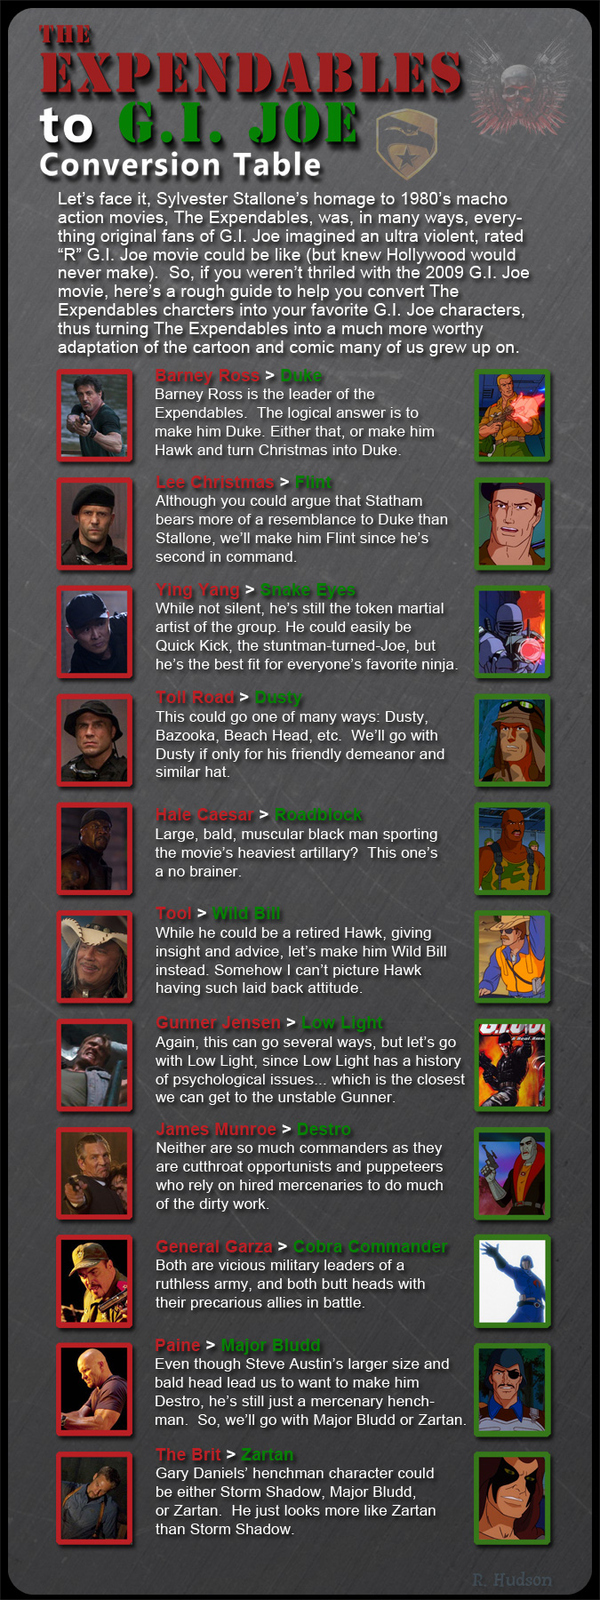 Expendables to G.I. Joe Conversion Table